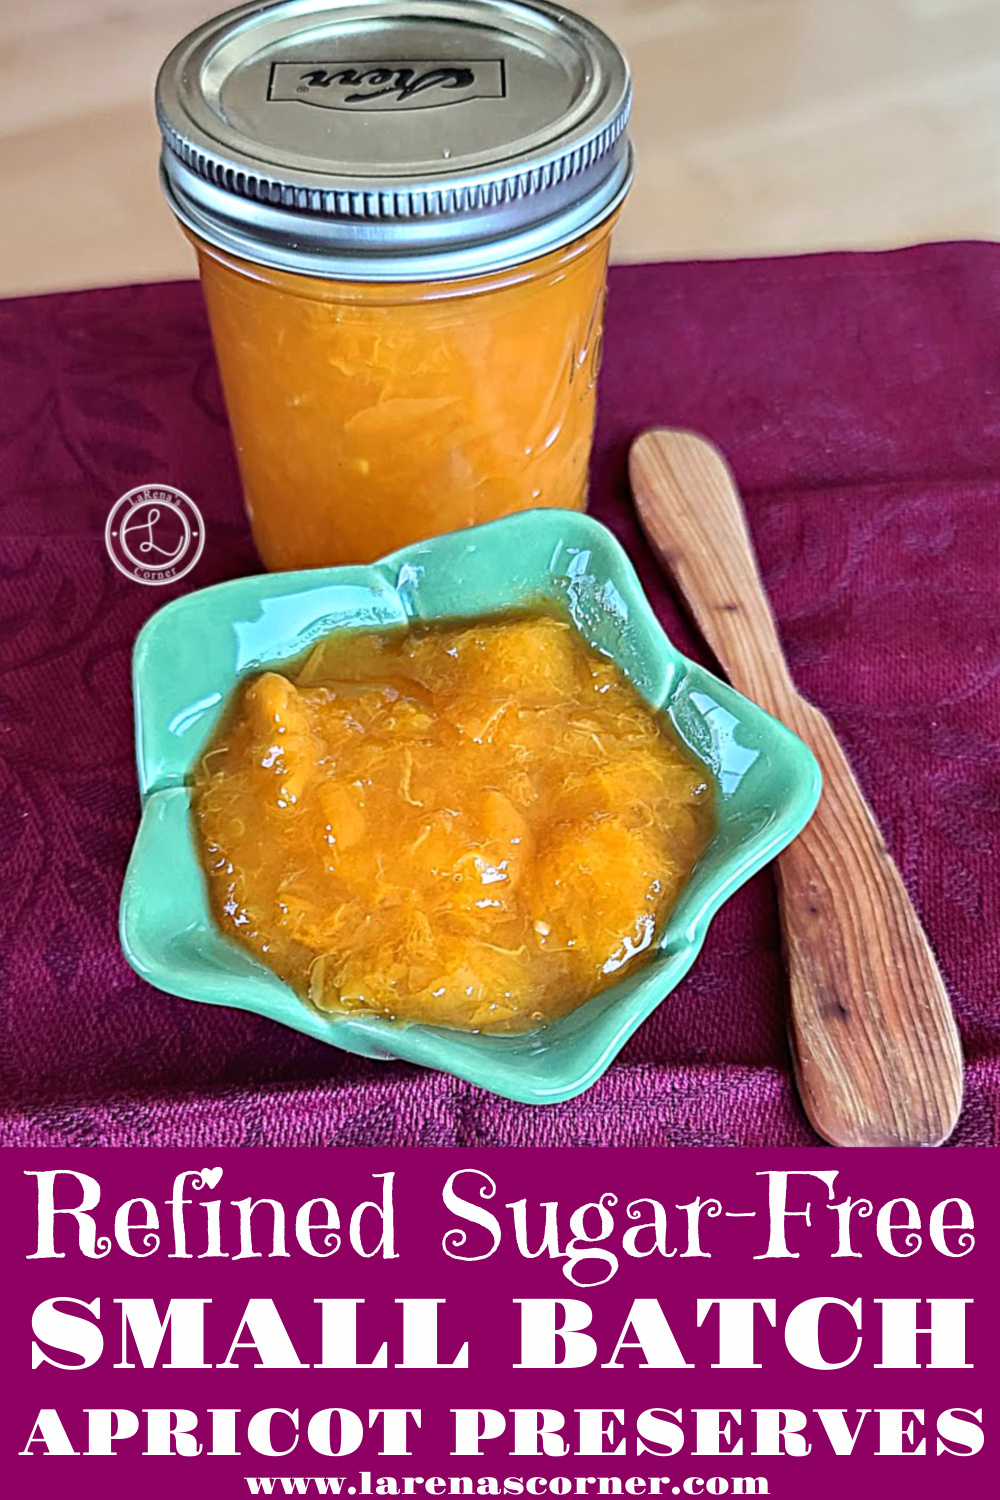 Small Batch Apricot Preserves in a small jar and in a bowl with a wooden spreading knife.